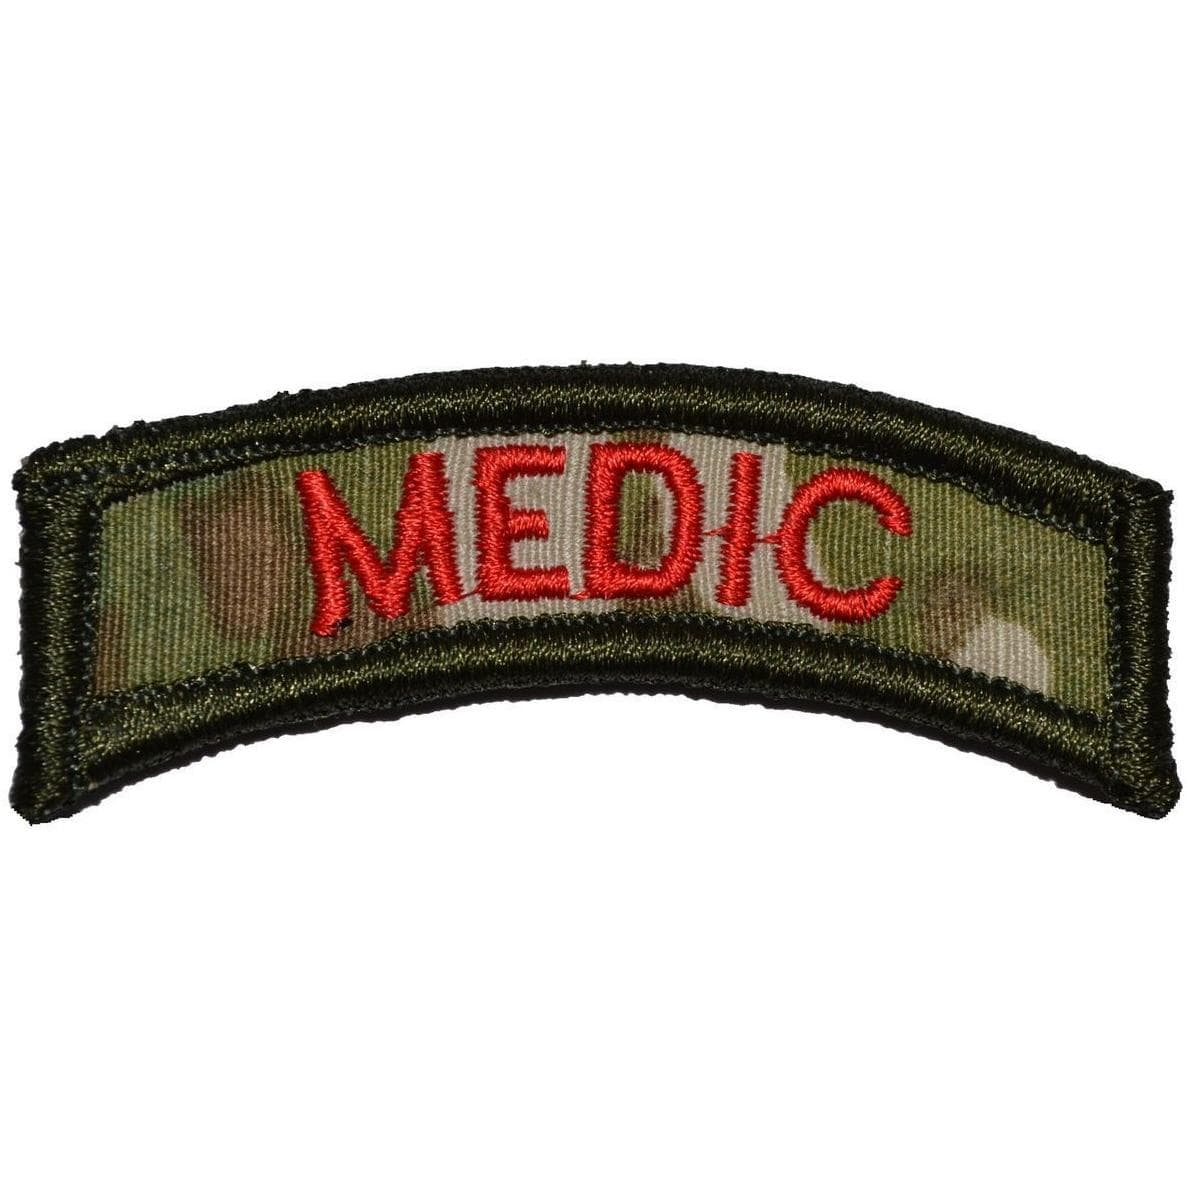 Tactical Gear Junkie Patches MultiCam Medic Tab Patch